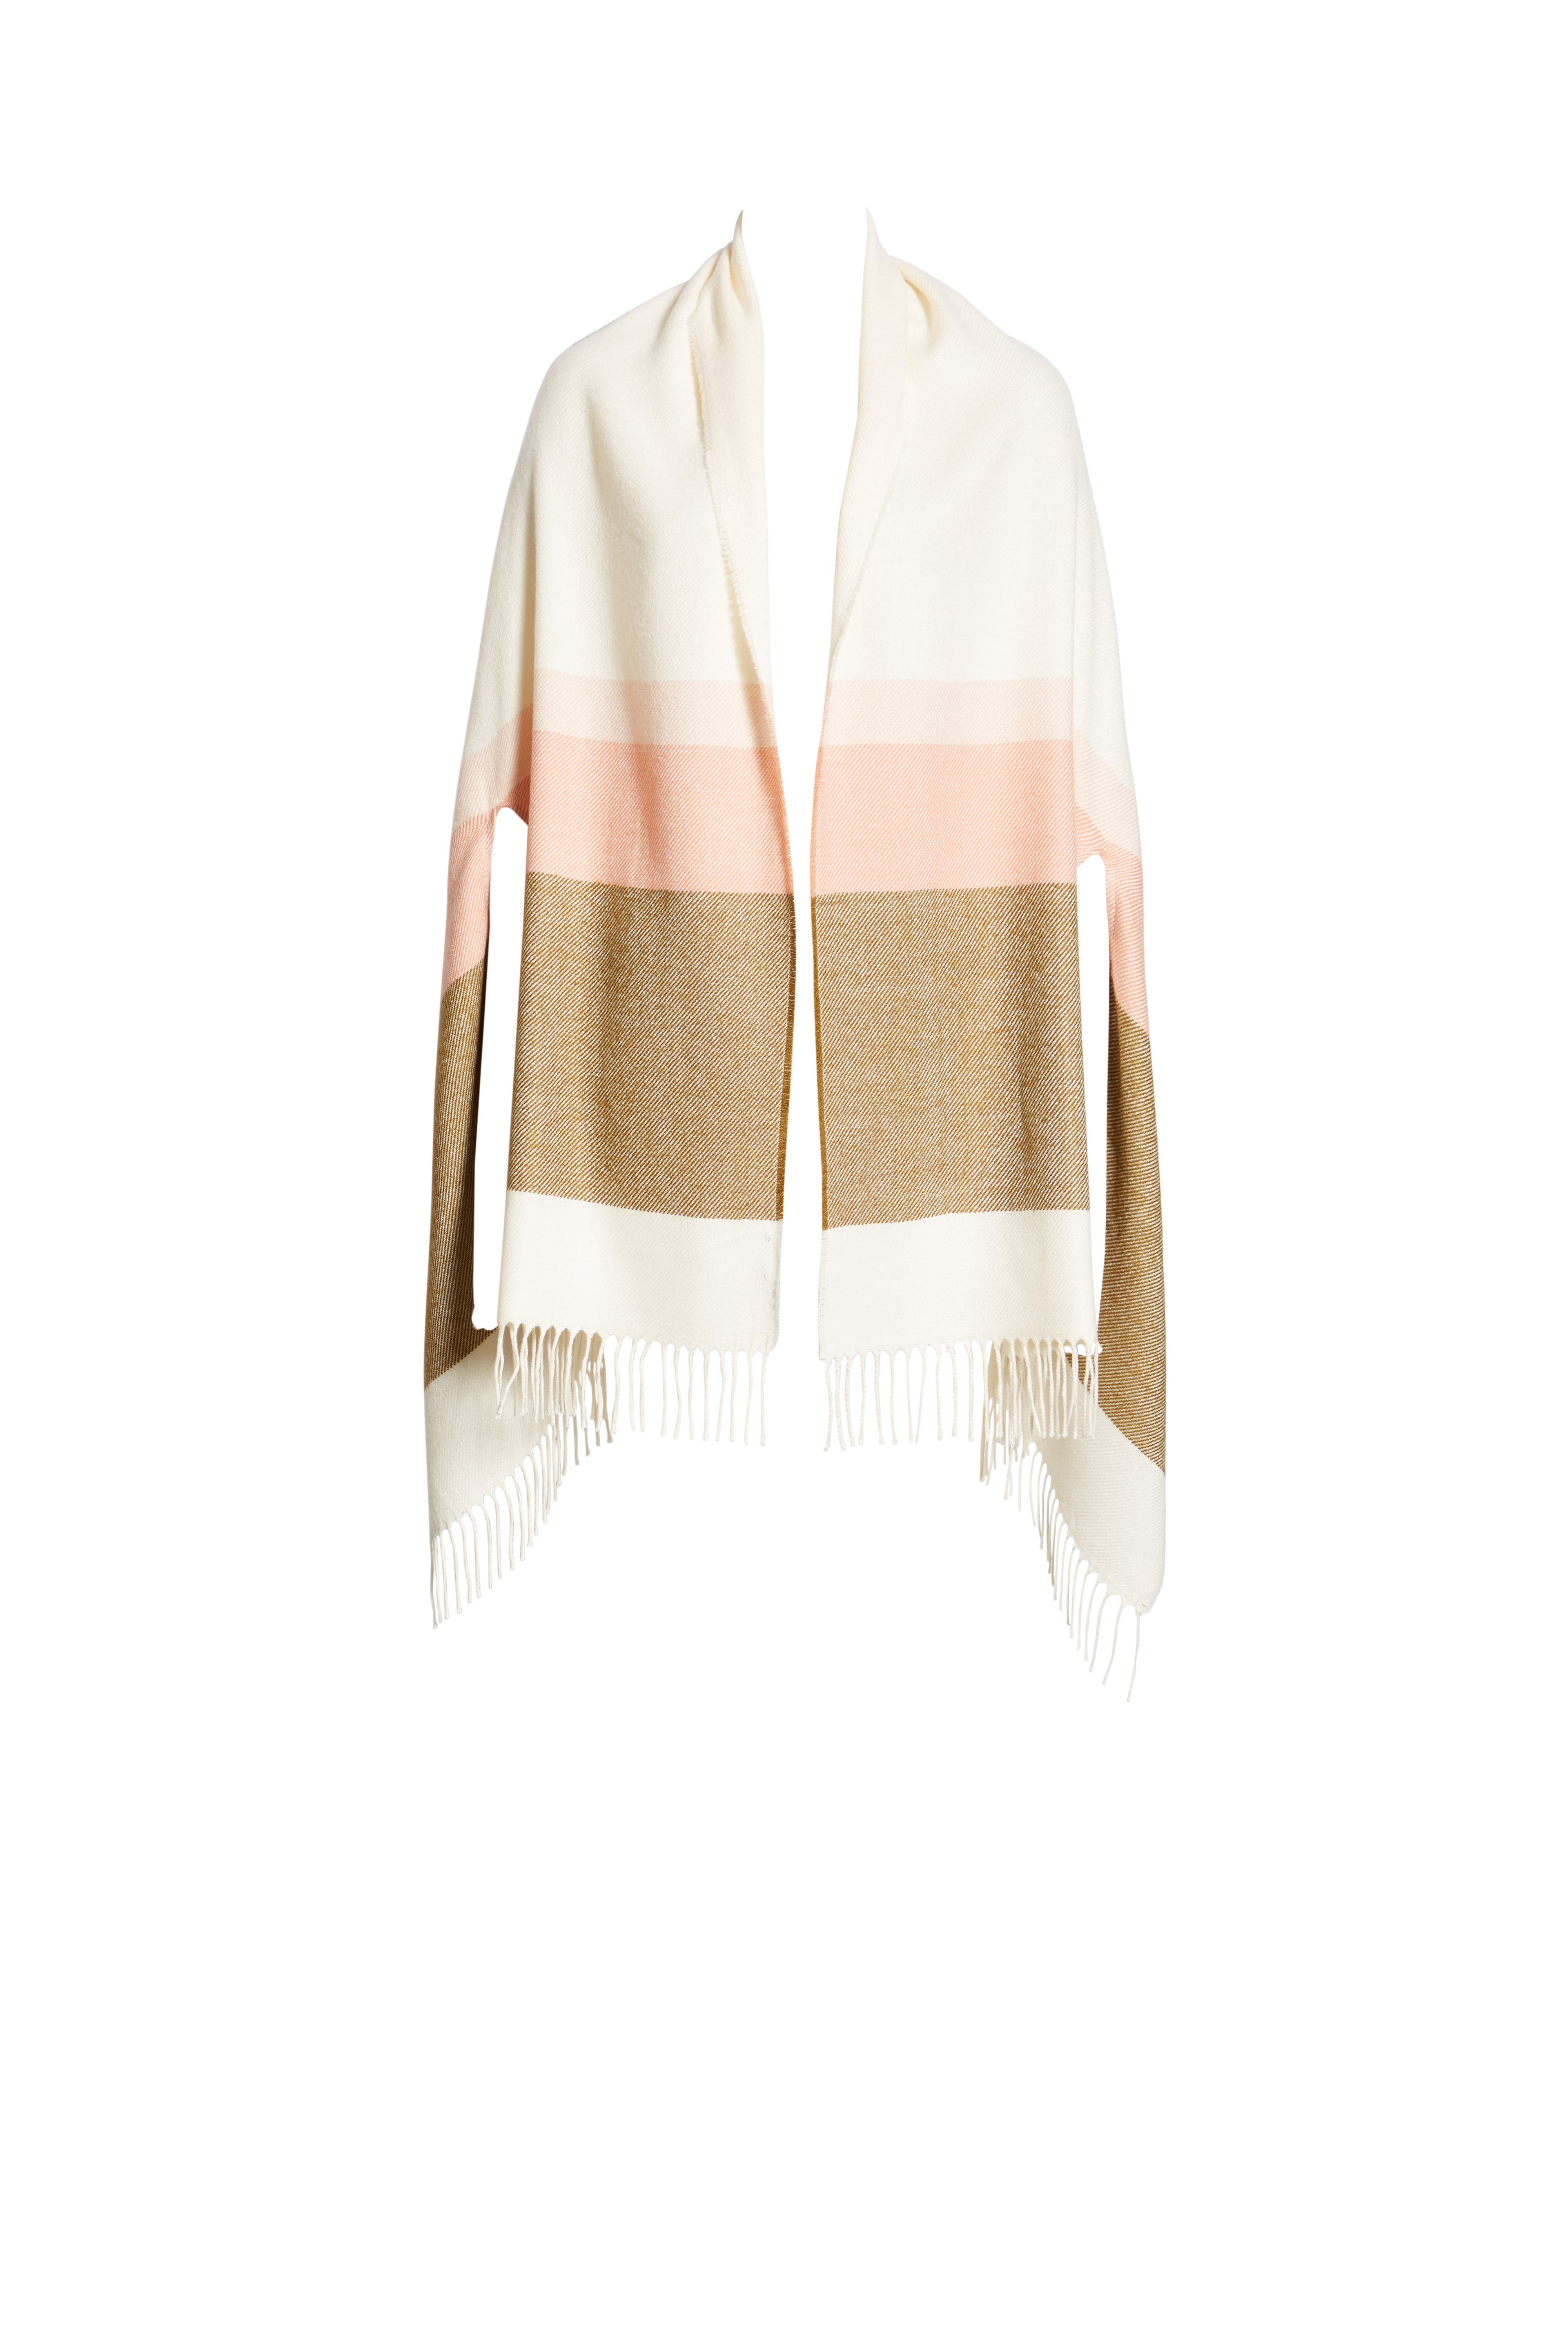 MADEWELL, Placed Stripe Cape Scarf, Alternate thumbnail 2, color, 200